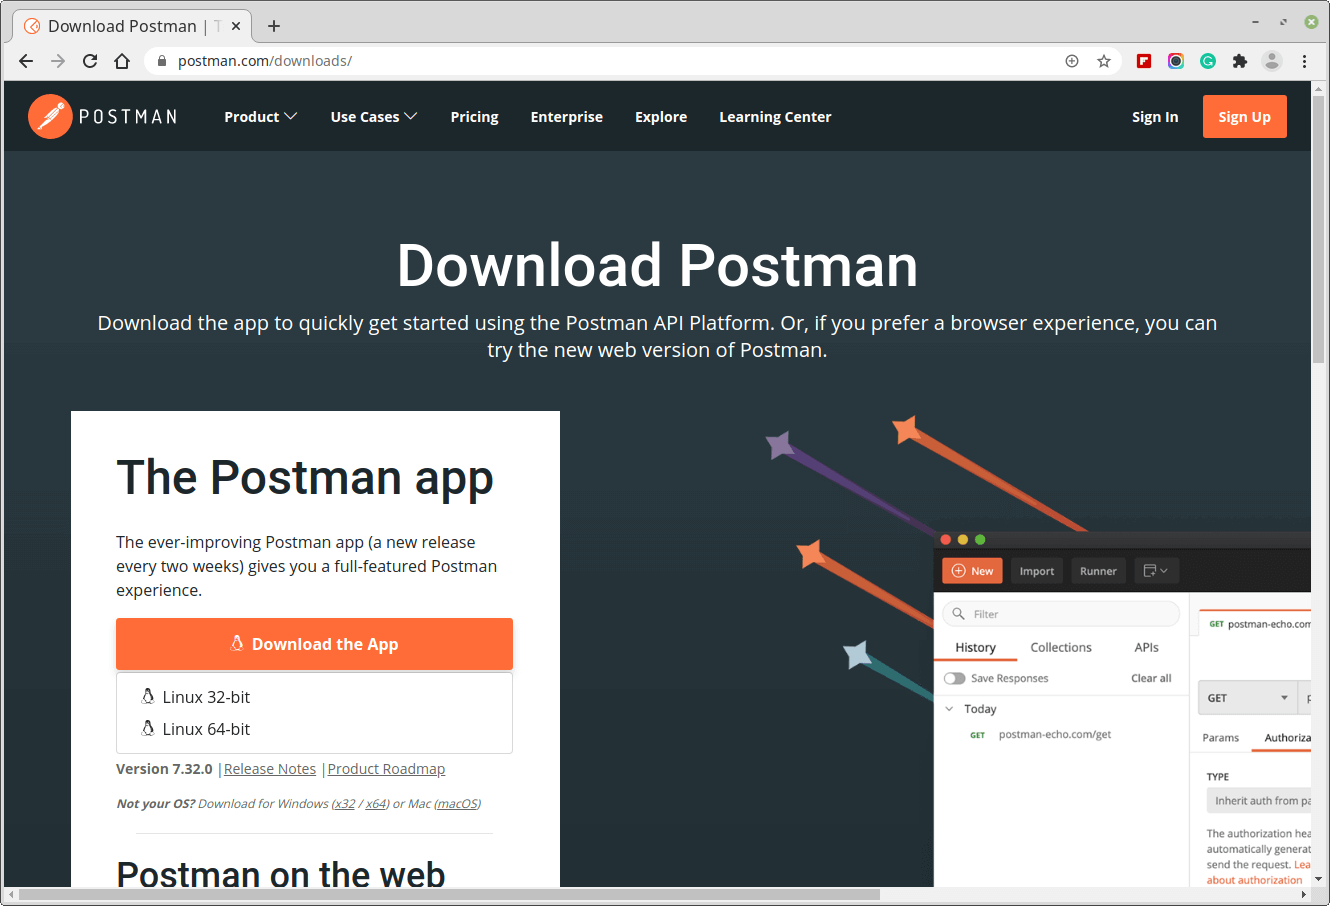 Download Postman Desktop App